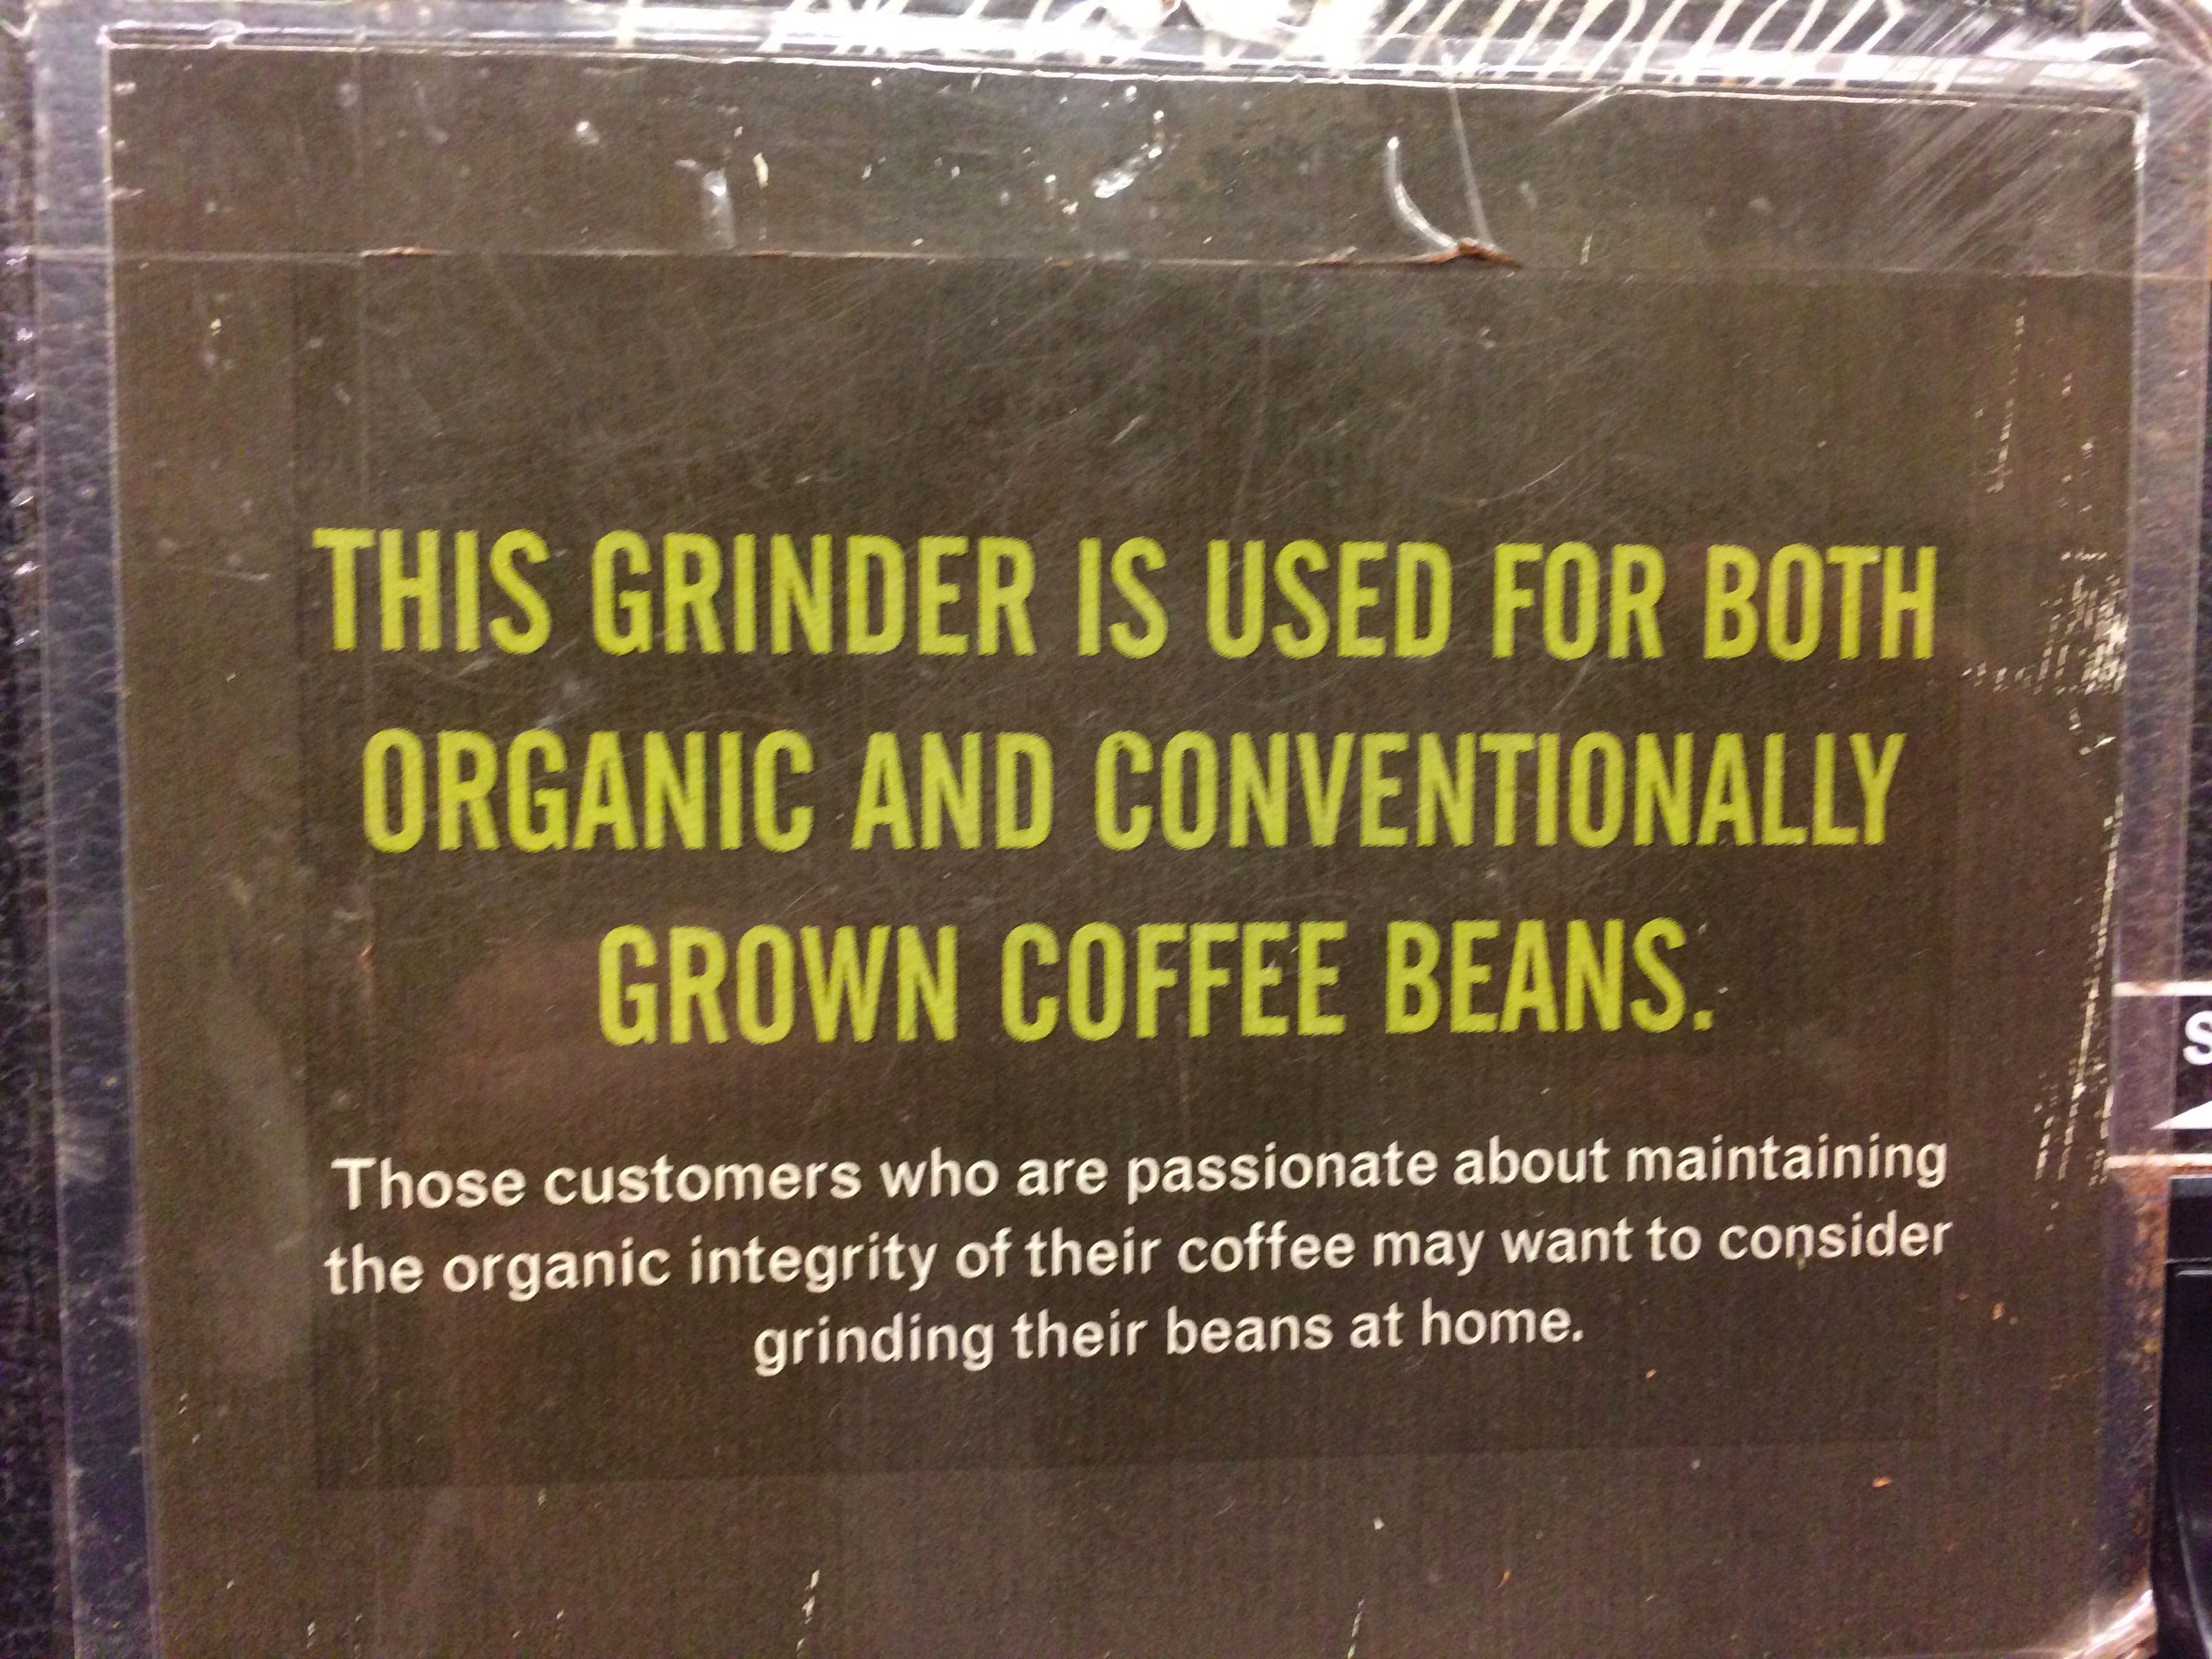 A sign in a New York City Whole Foods.